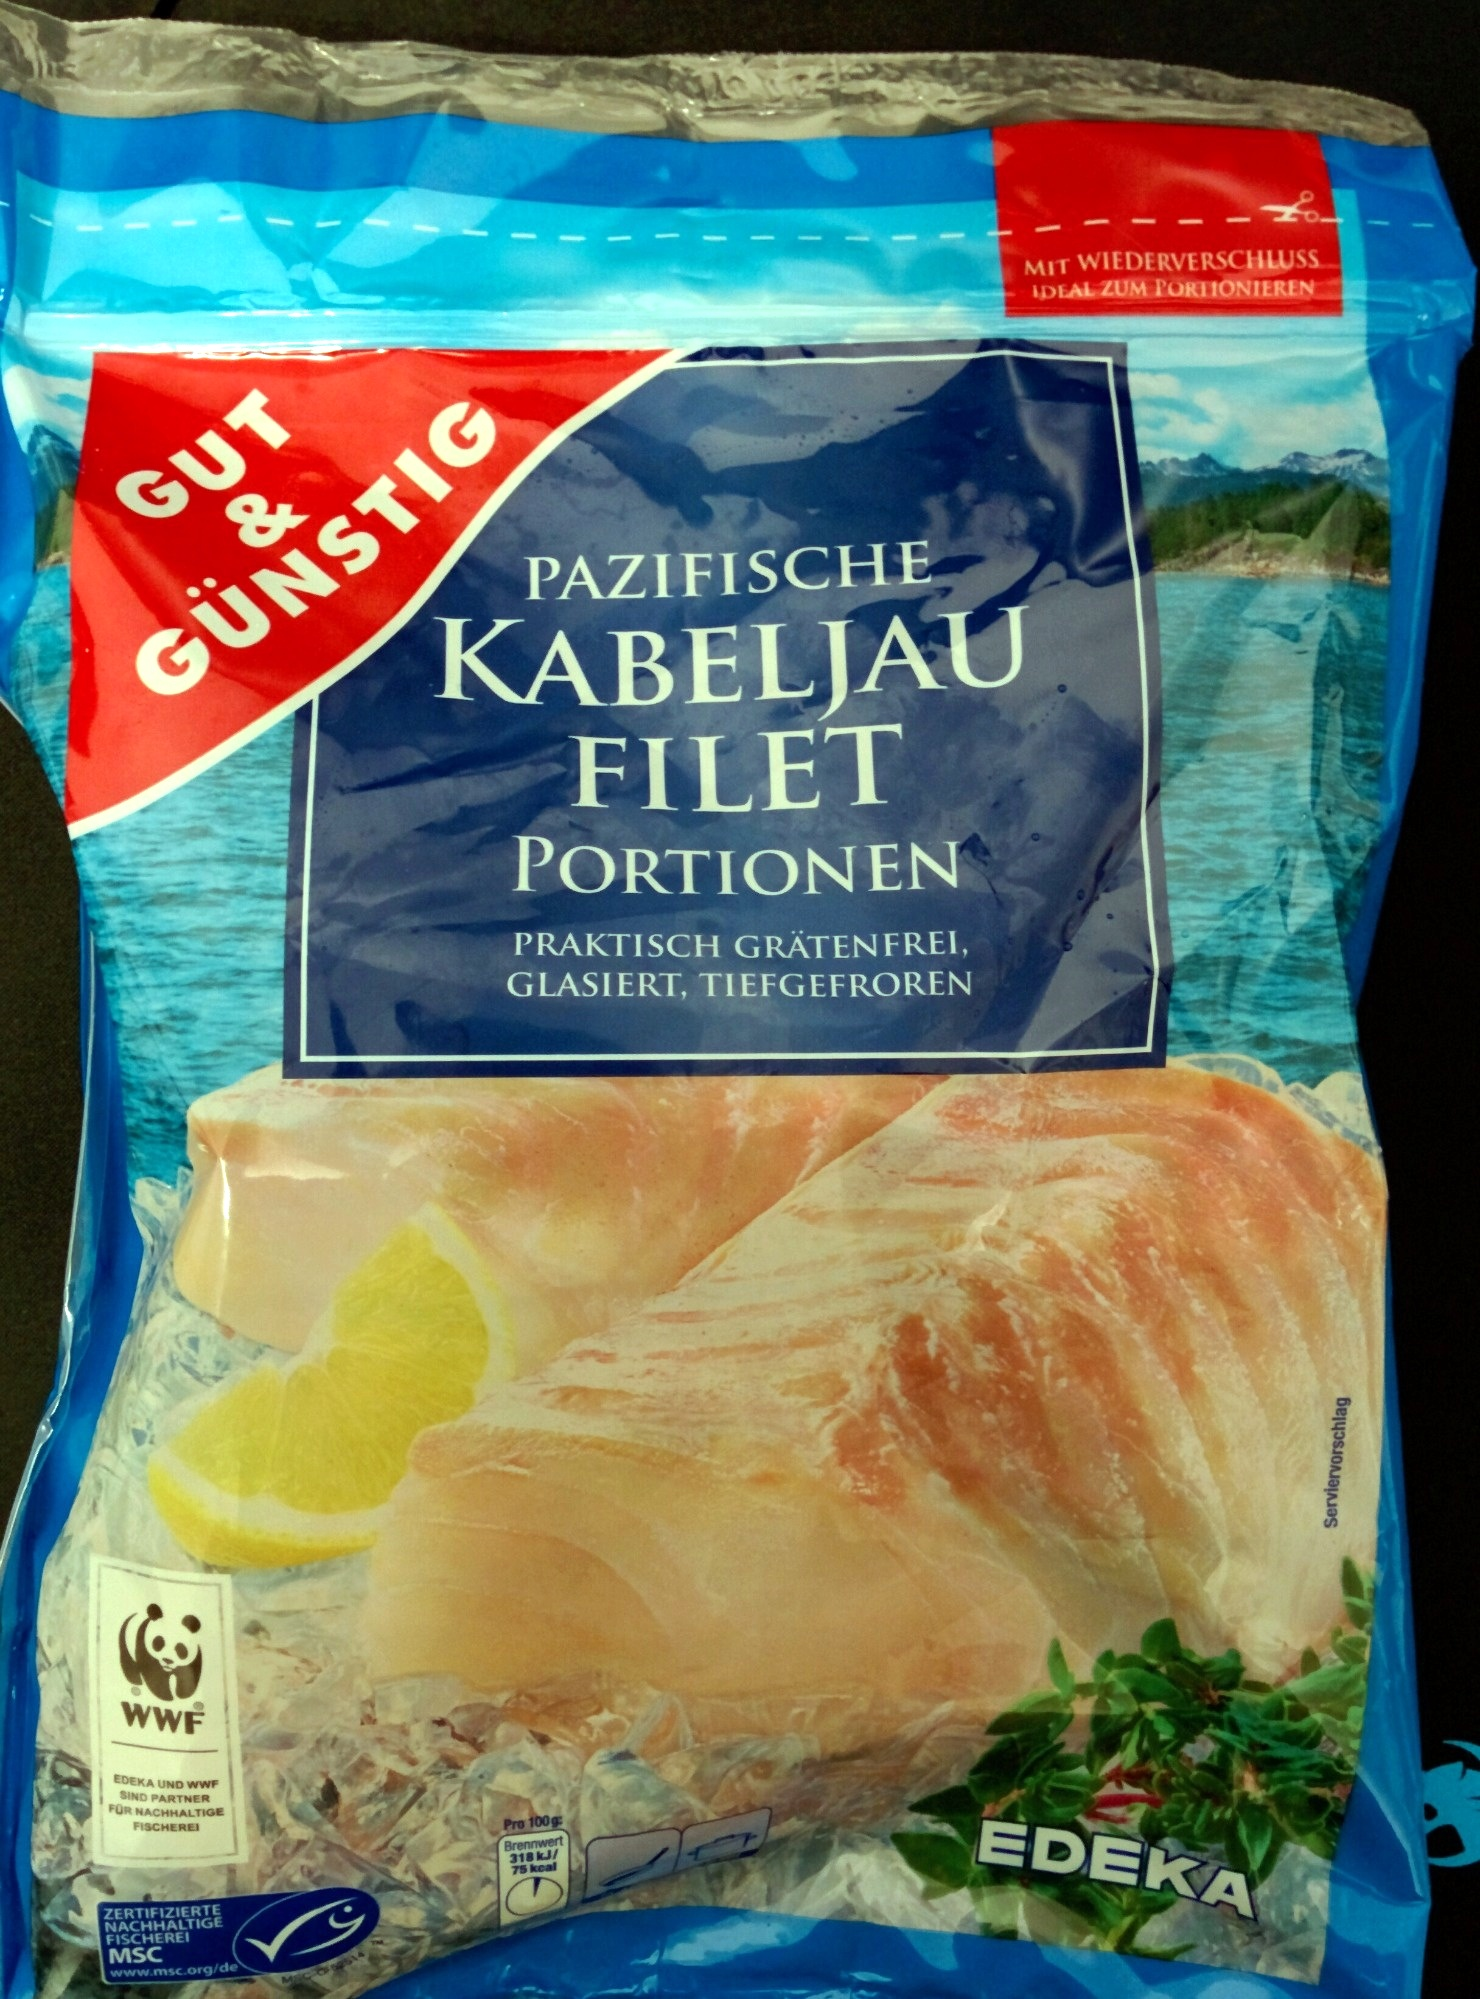 Pazifische Kabeljau Filet Portionen - Product